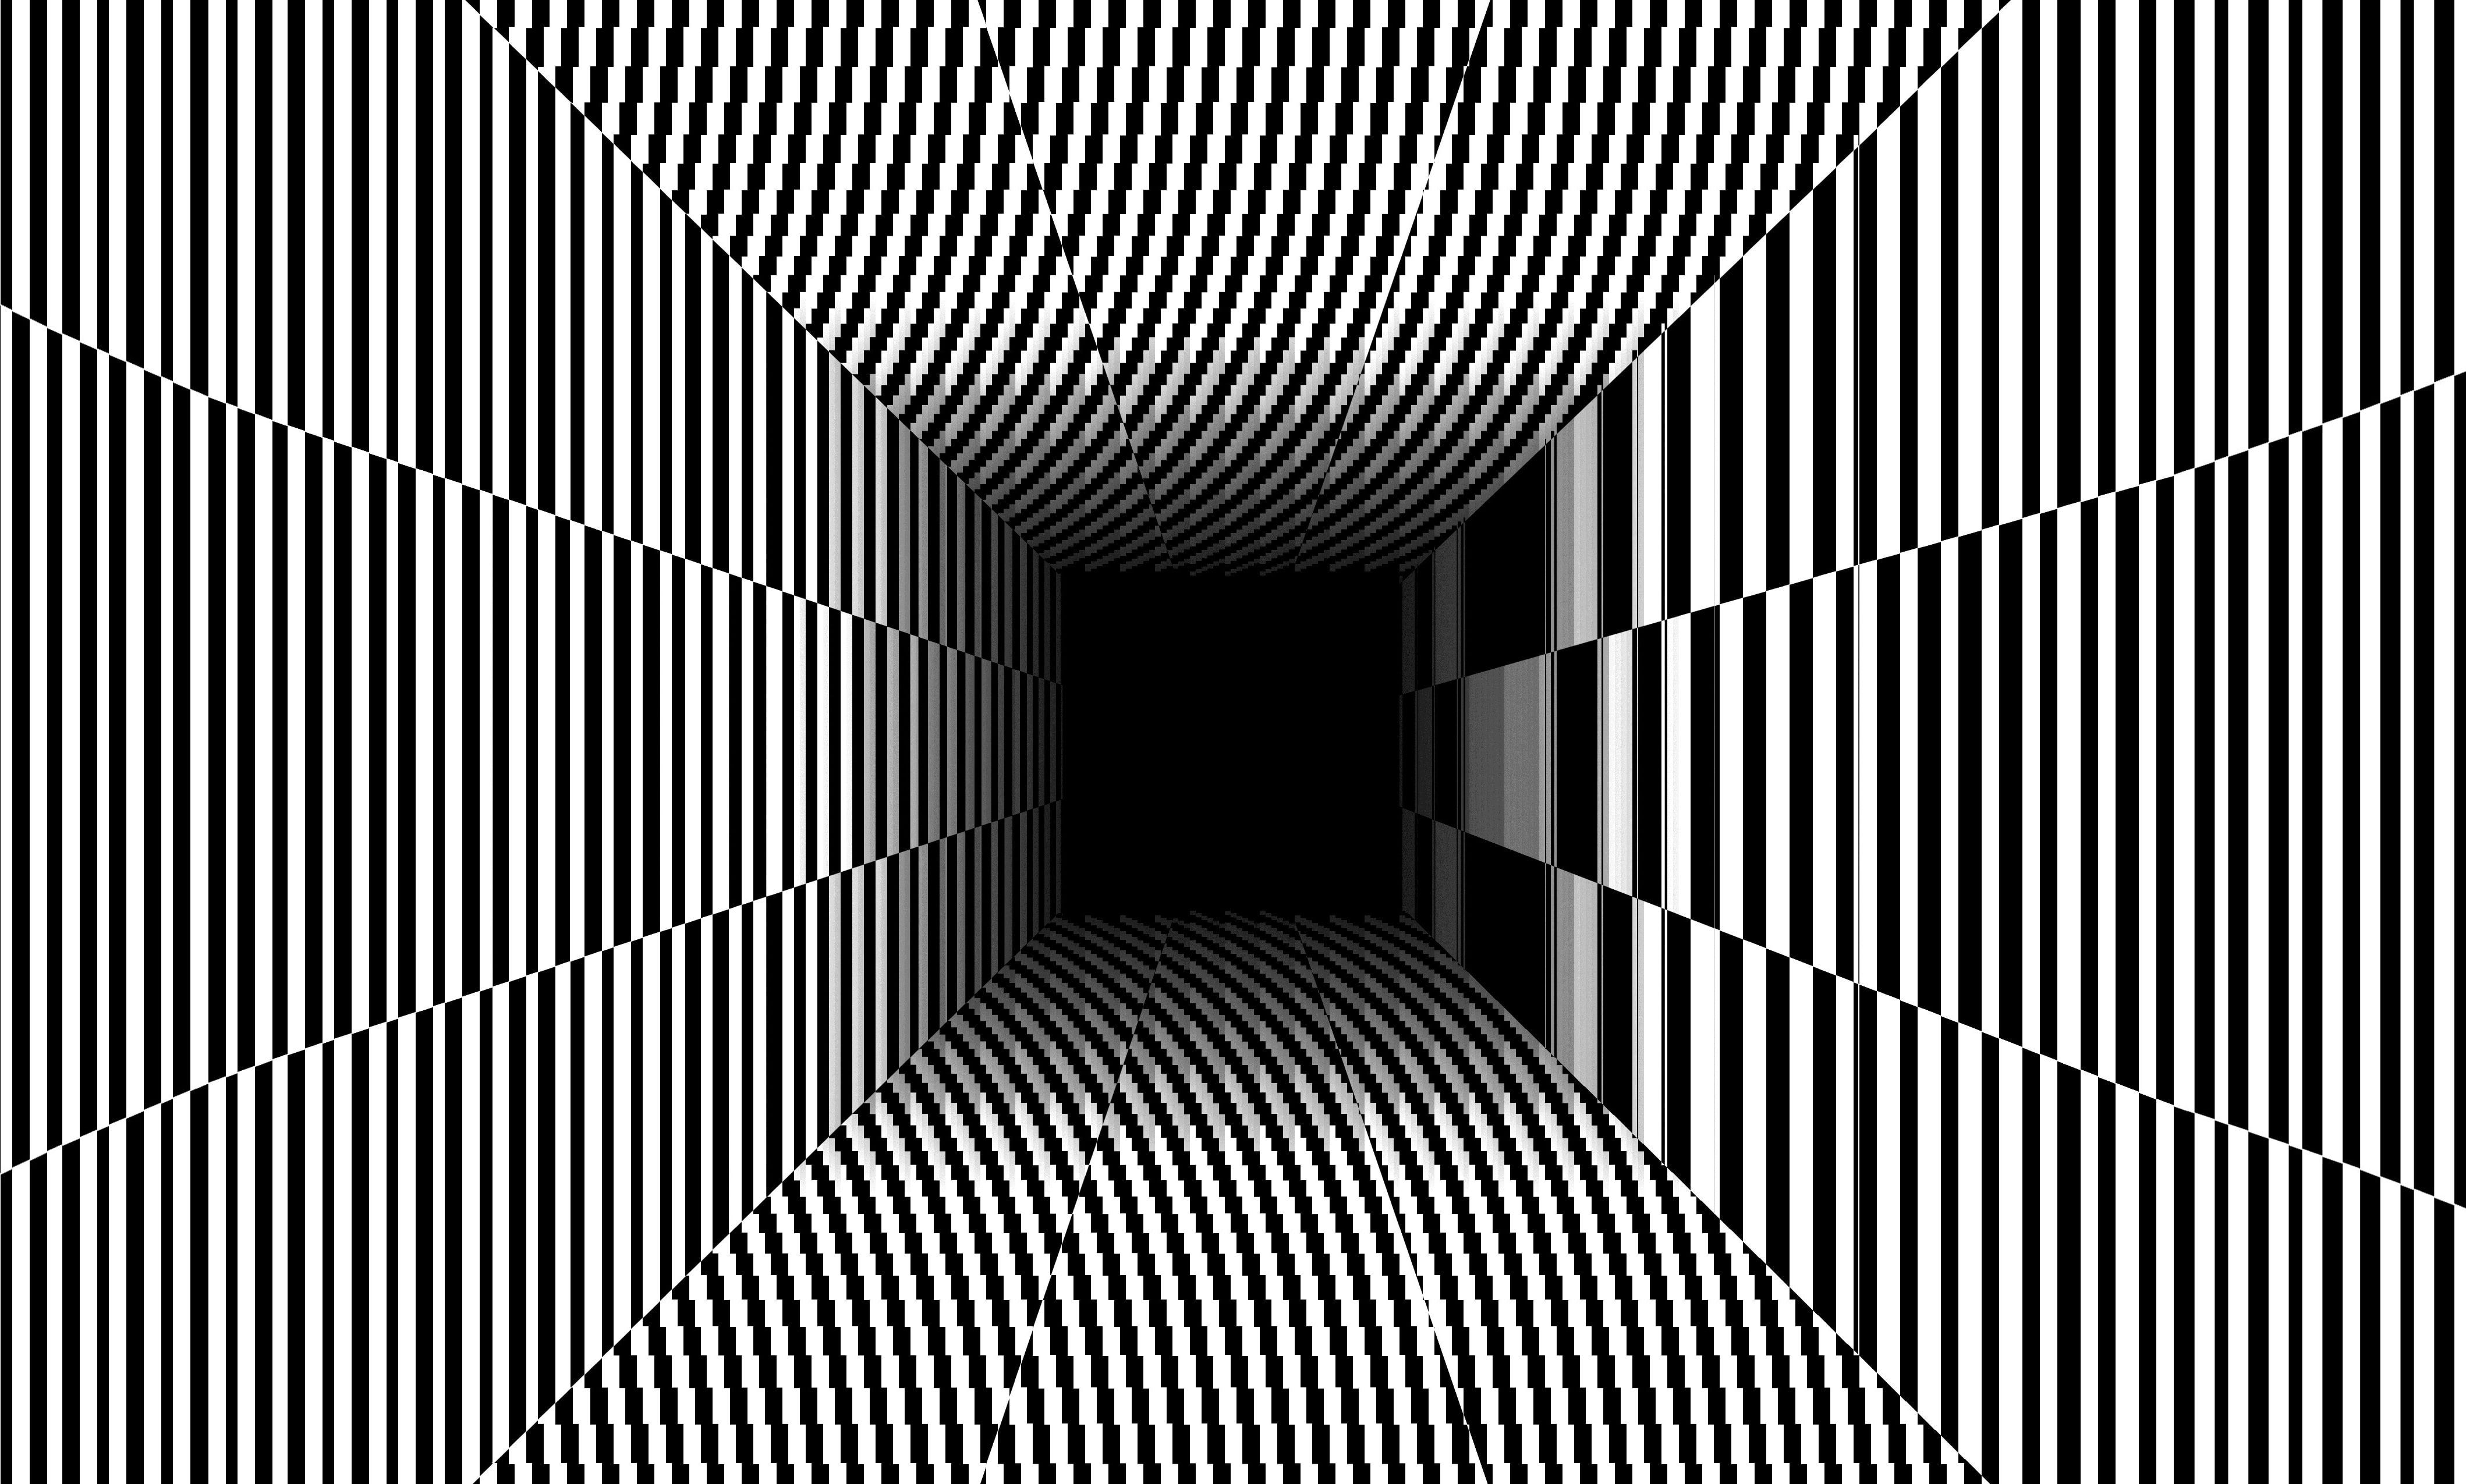 Download Psychedelic Lines Wallpaper By High Times 41 Free On Zedge Now Browse Millions Optical Illusion Wallpaper Glitch Wallpaper Optical Illusions Art